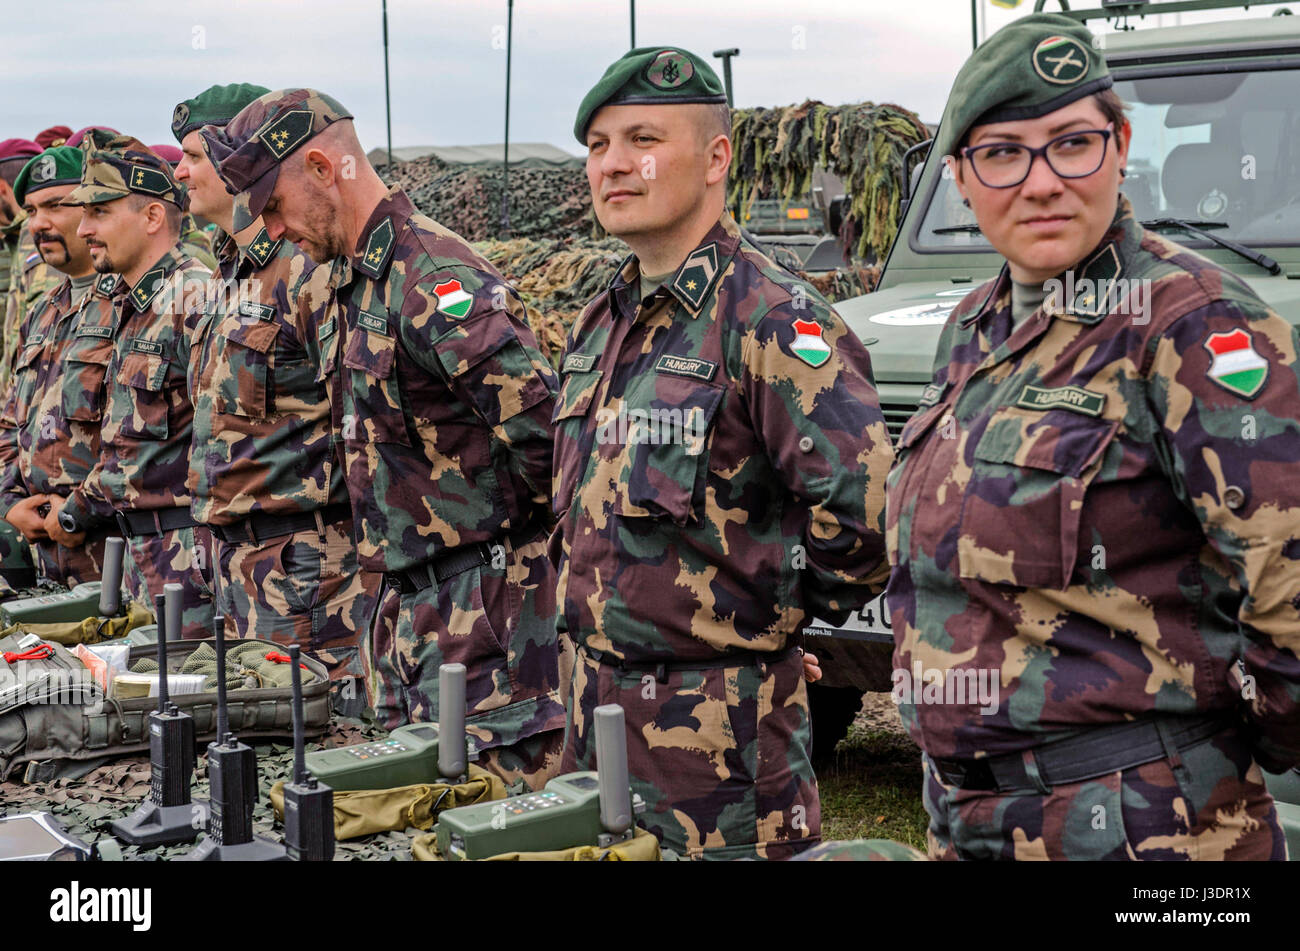 Soldiers. Hungarian